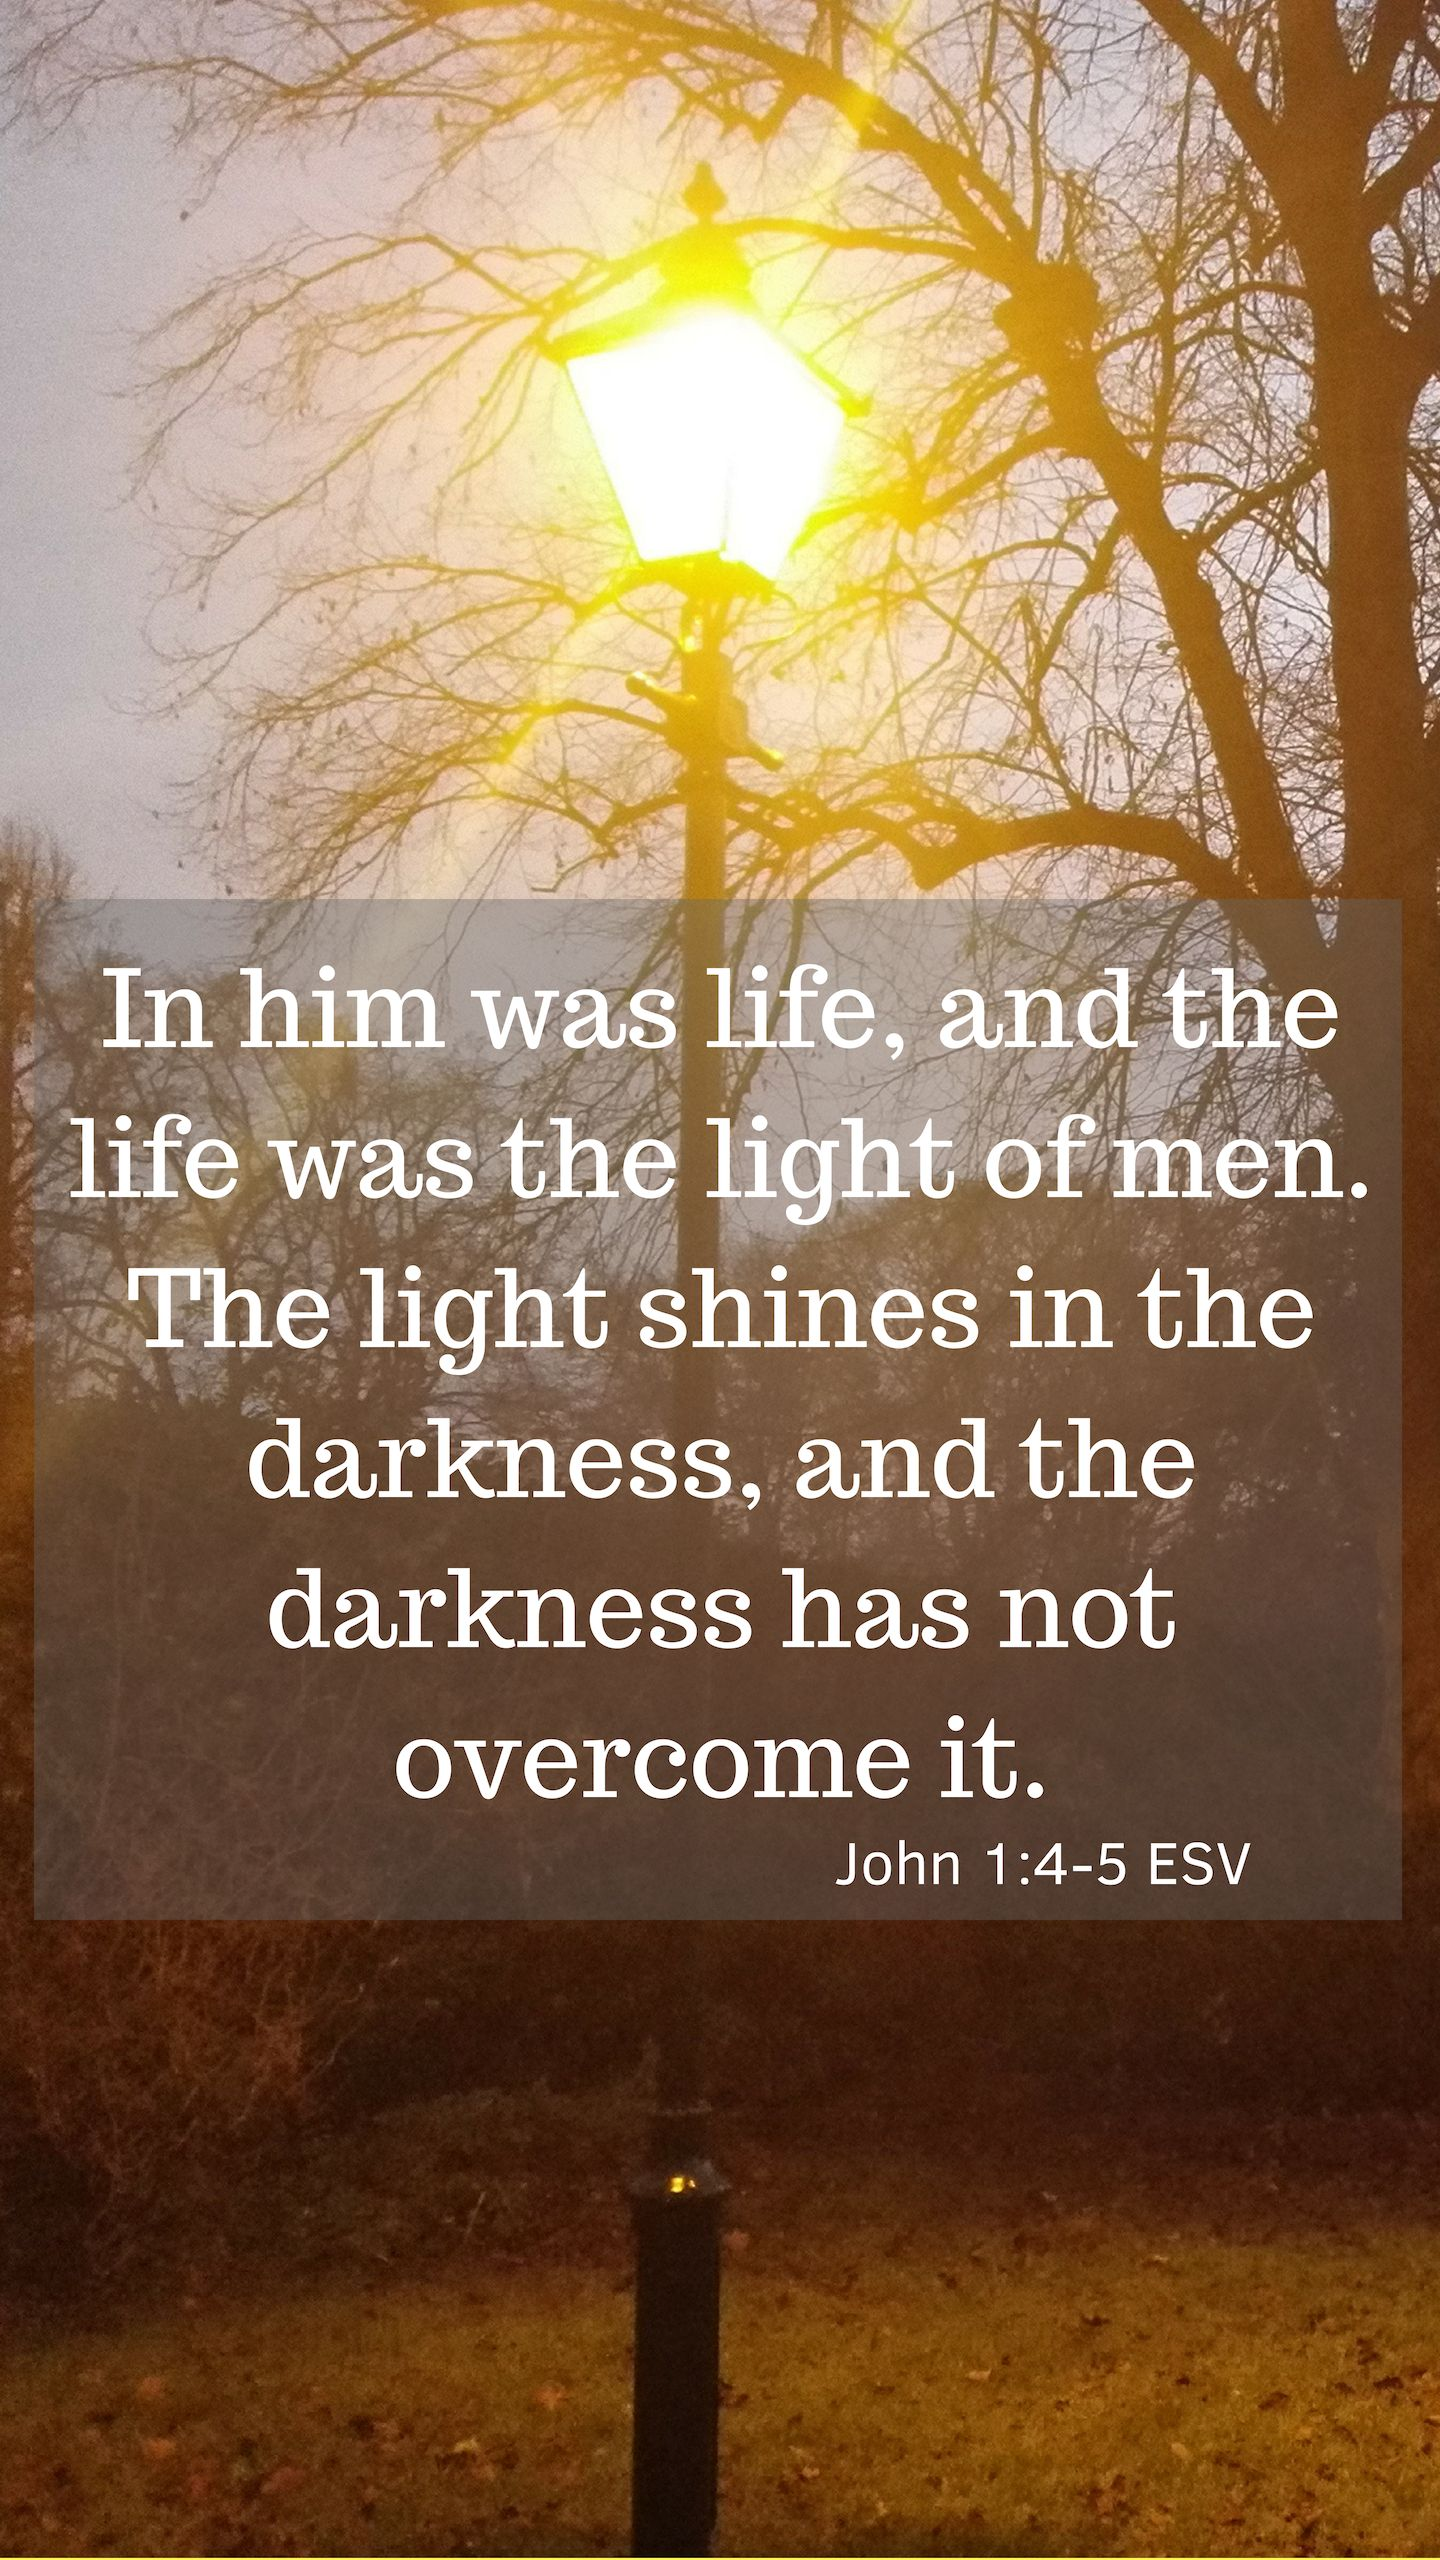 'In him was life, and the life was the light of men. The light shines in the darkness, and the darkness has not overcome it.'  John 1:4-5 ESV